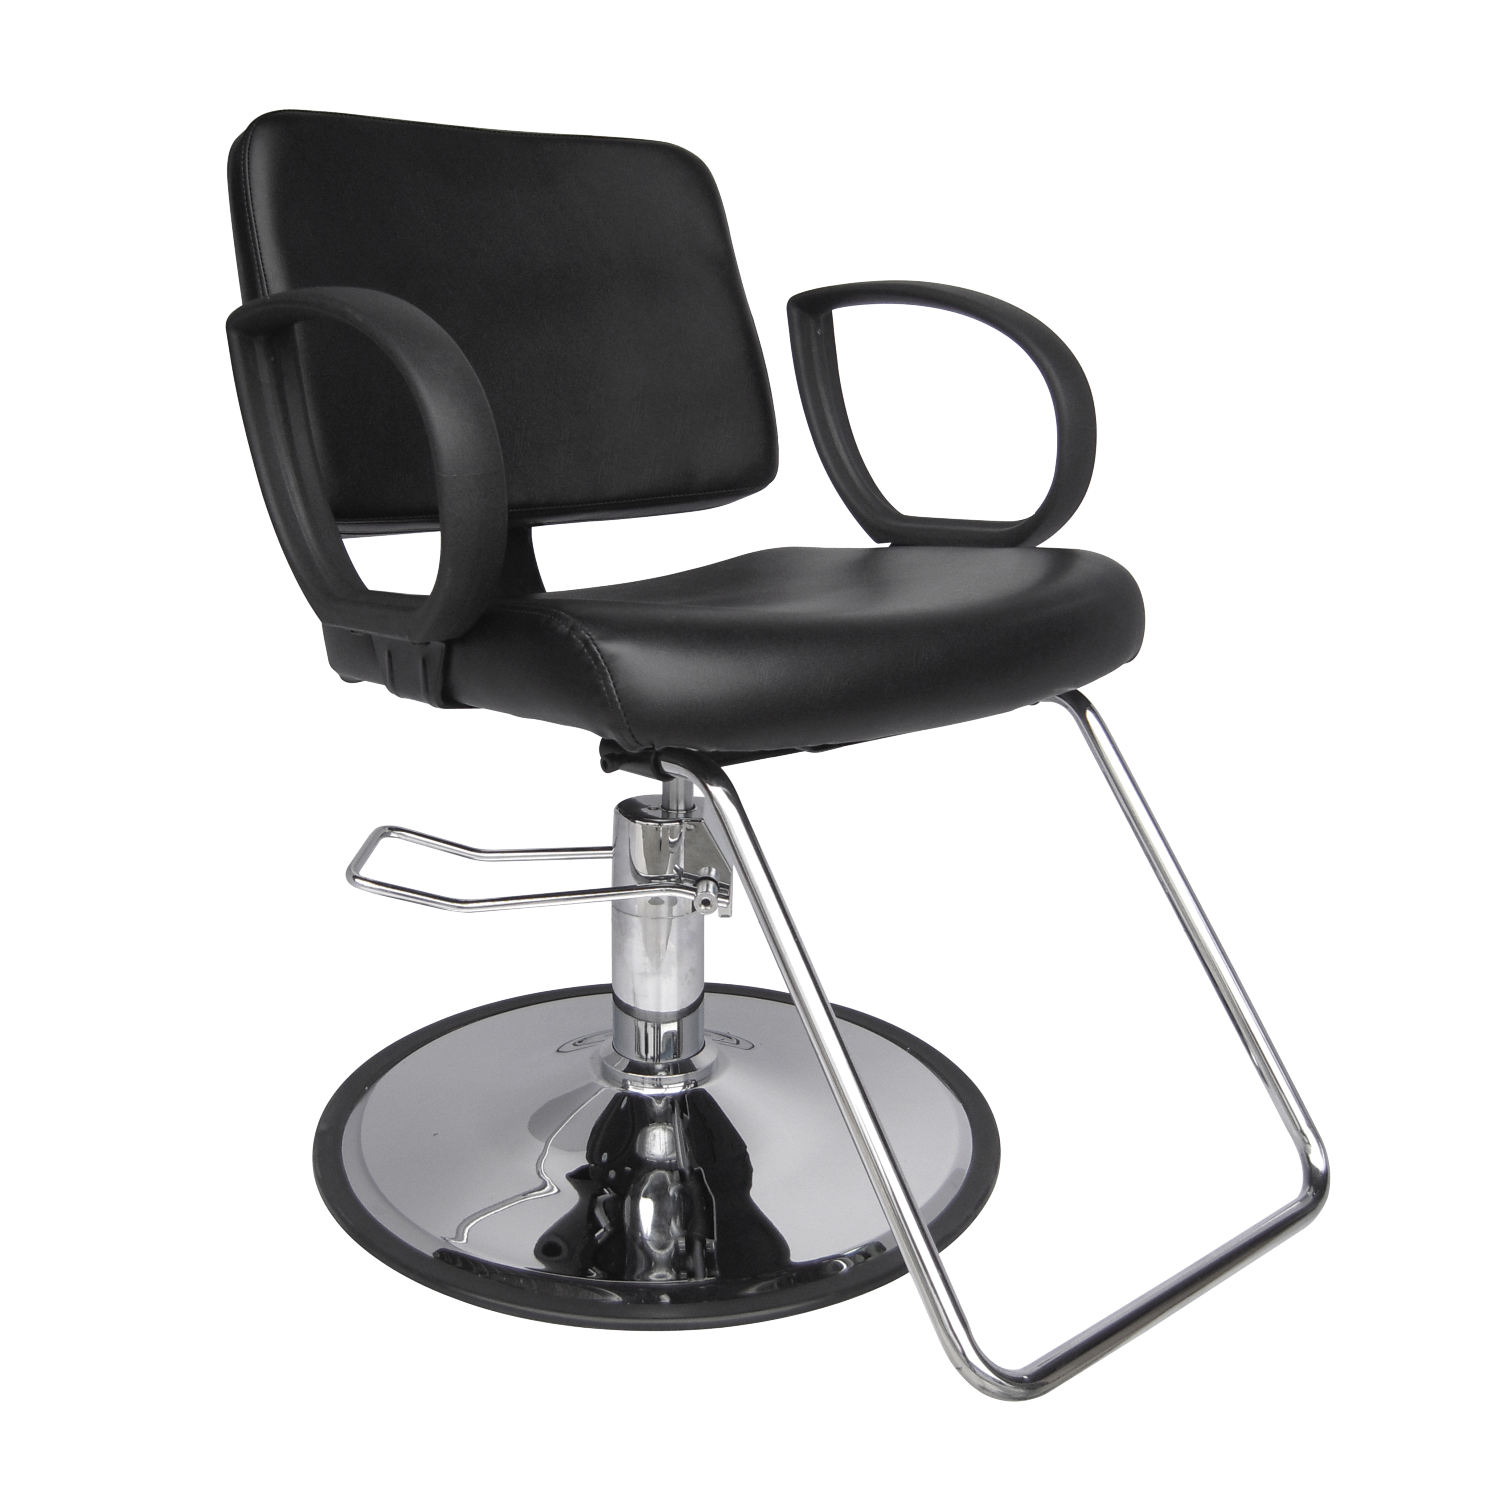 sc 1 st  CosmoProfEquipment.com & Hannah Styling Chair with Chrome Base at CosmoProf Equipment